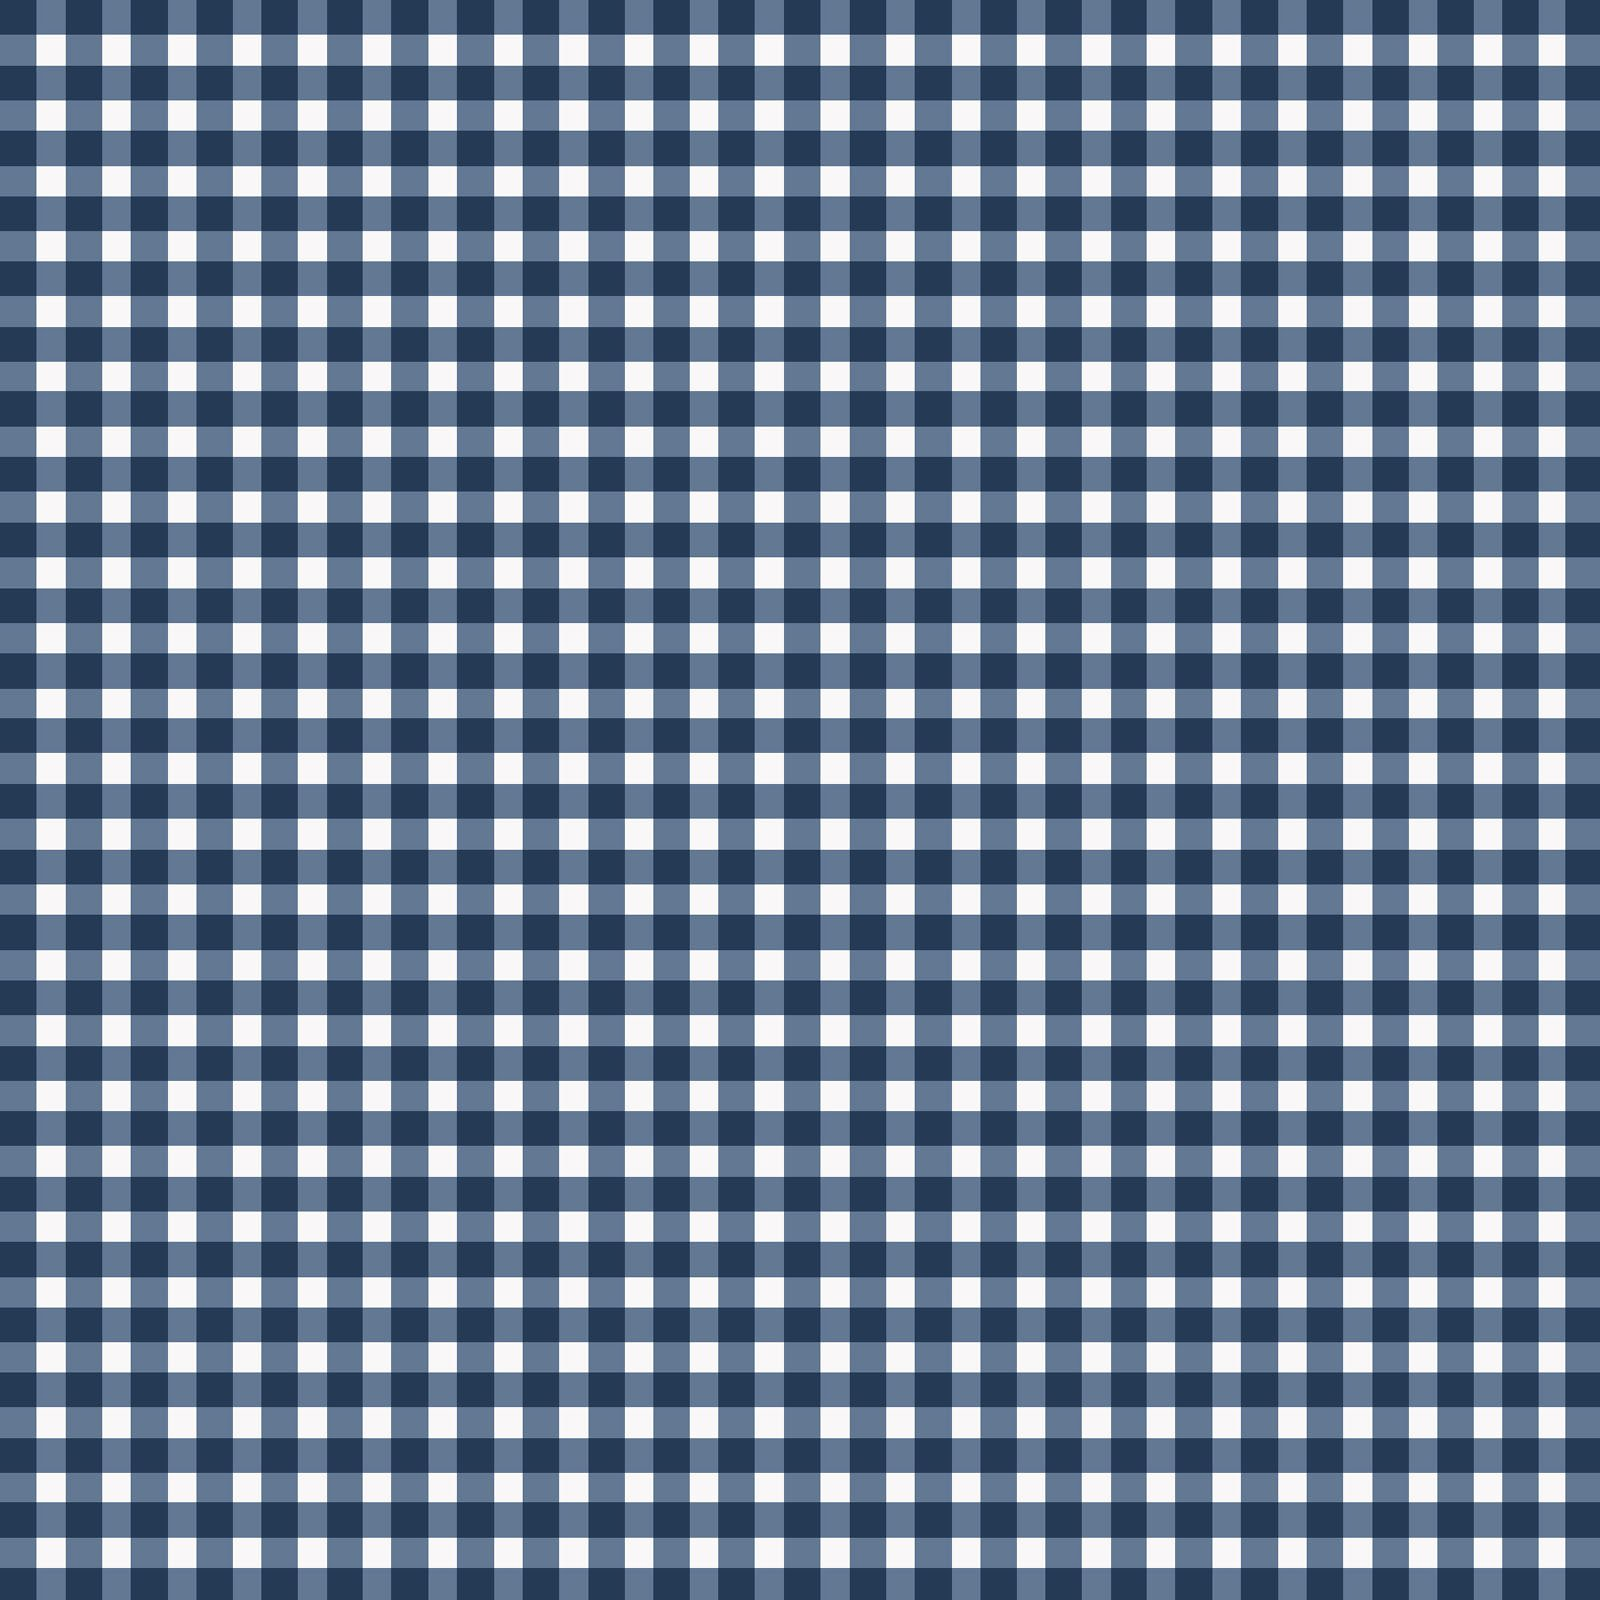 EESC-610 N3 - BEAUTIFUL BASICS BY MAYWOOD STUDIO CLASSIC CHECK RICH NAVY